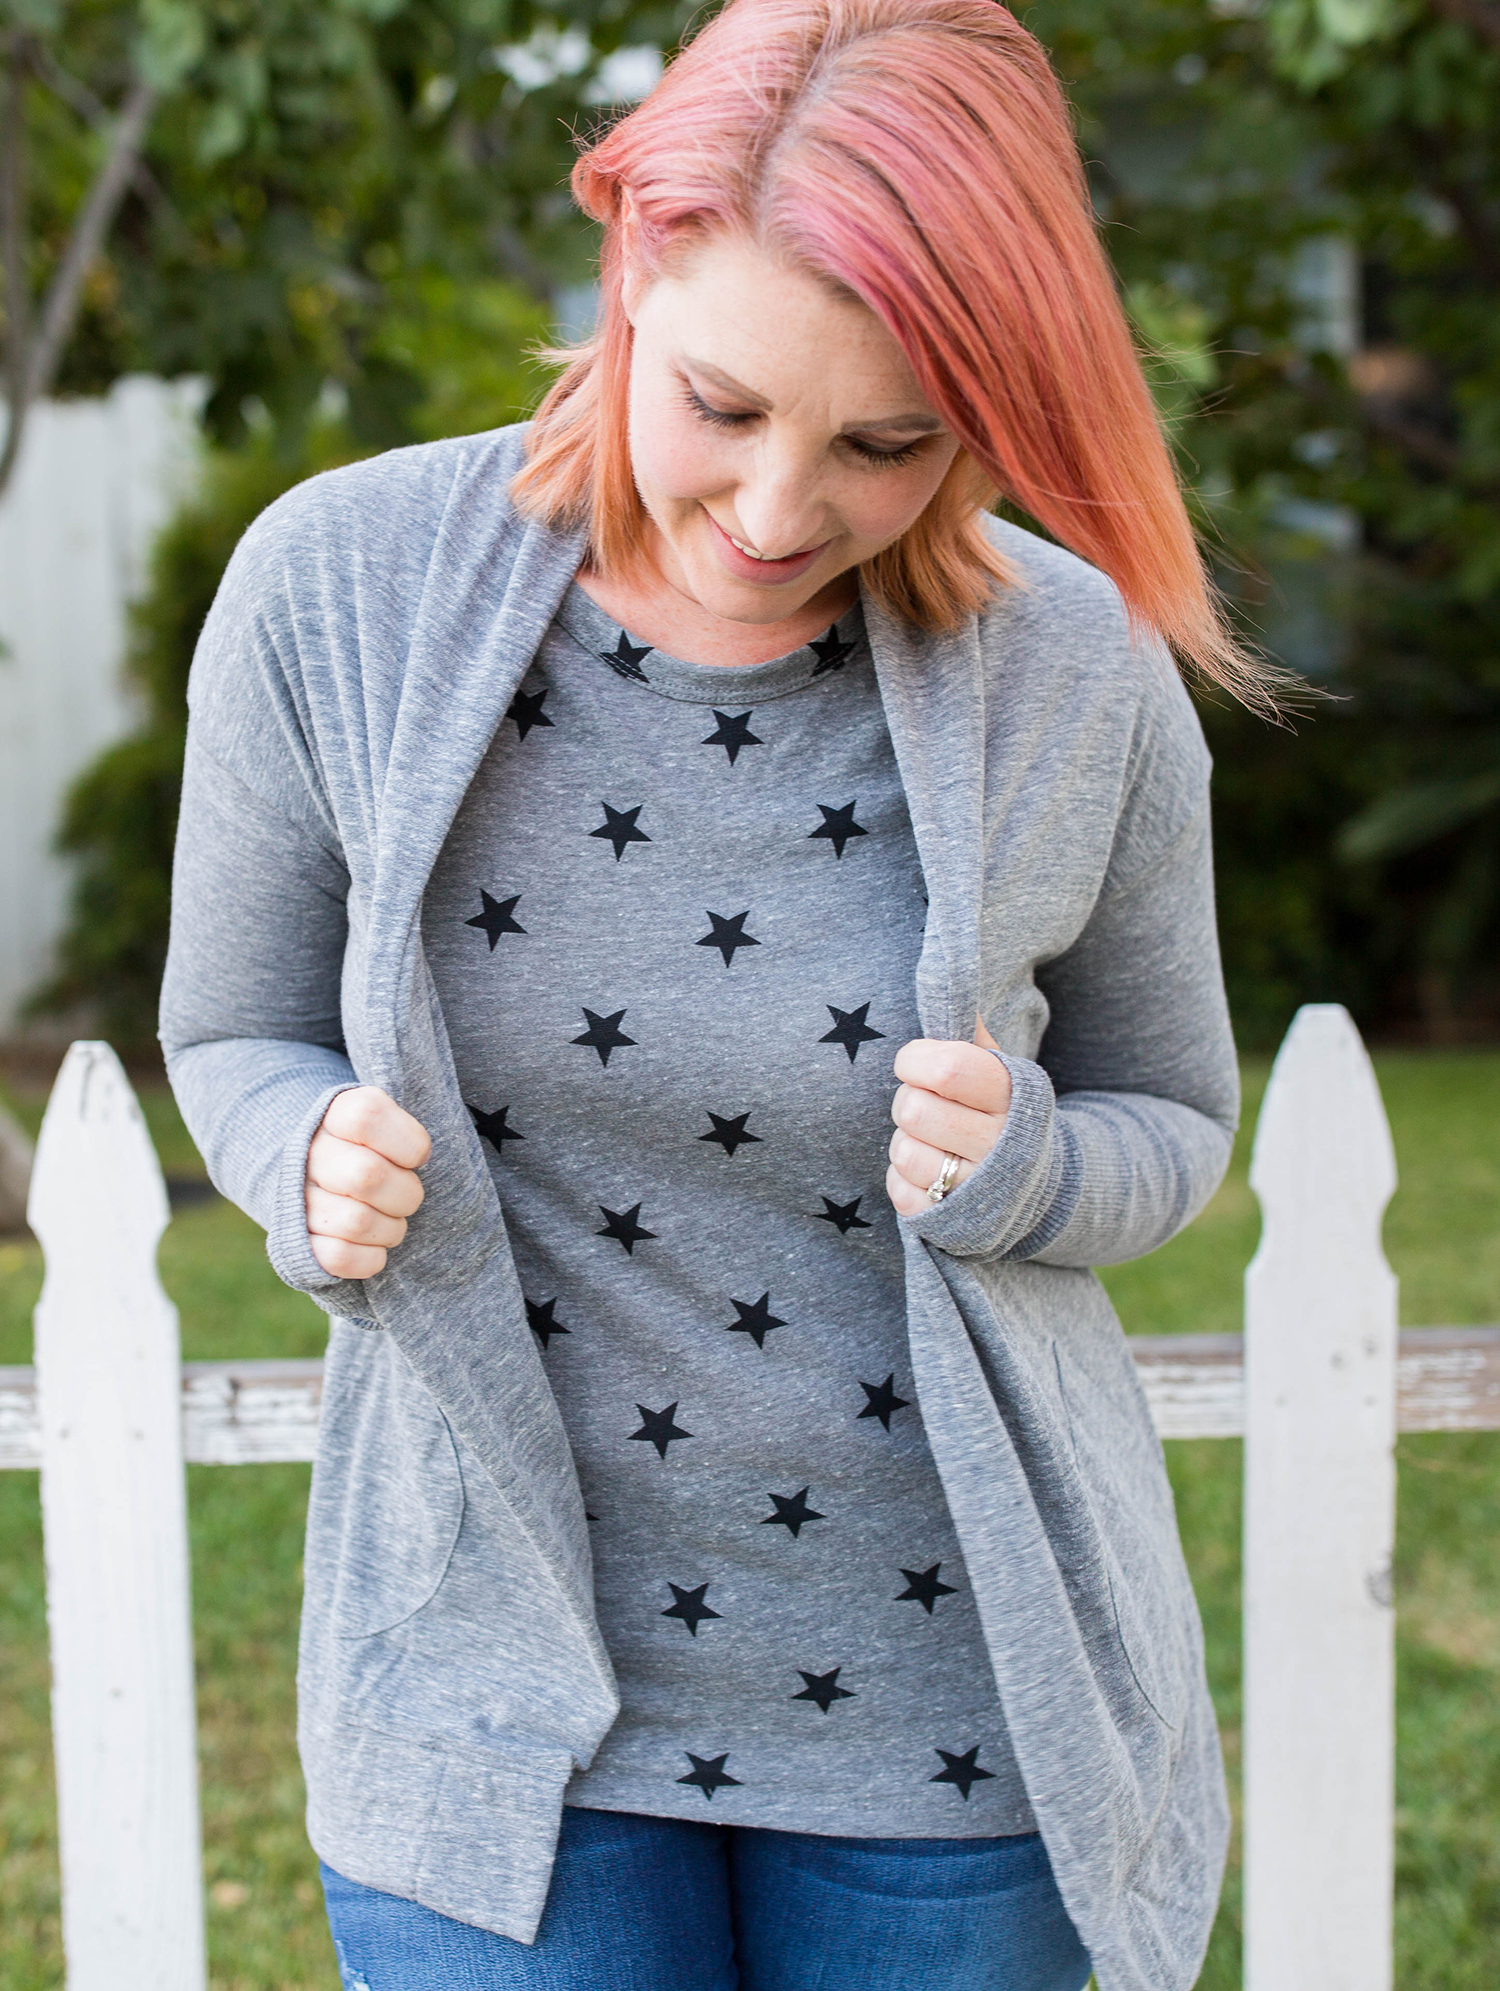 Amazon Prime Wardrobe: Have you tried it yet? I love this grey cardigan!